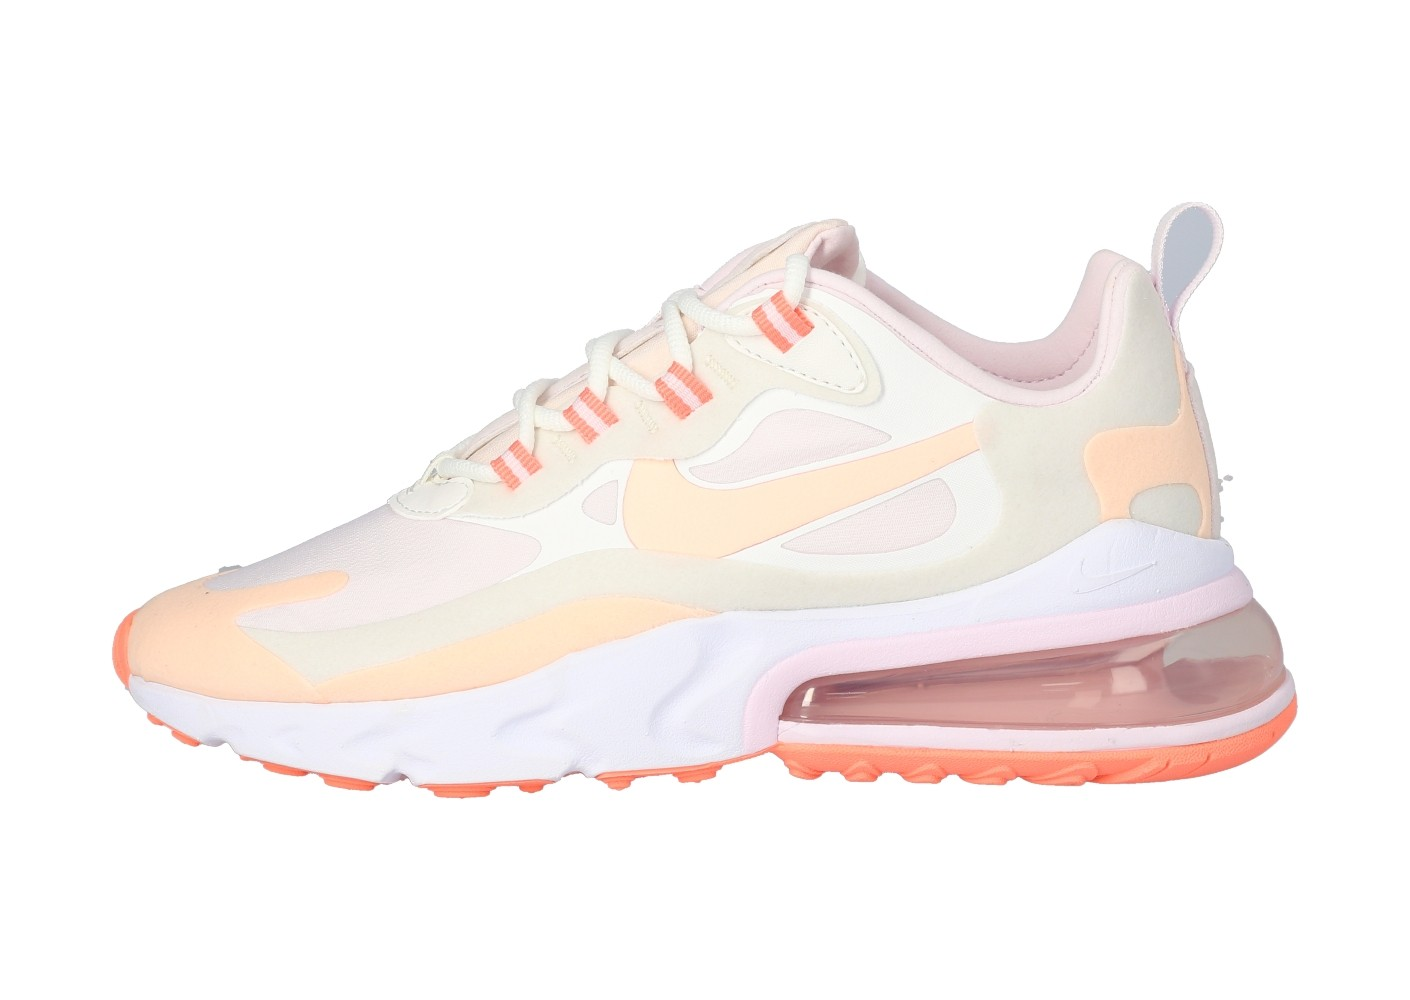 Nike Air Max 270 React grise et rose - Chaussures Baskets ...